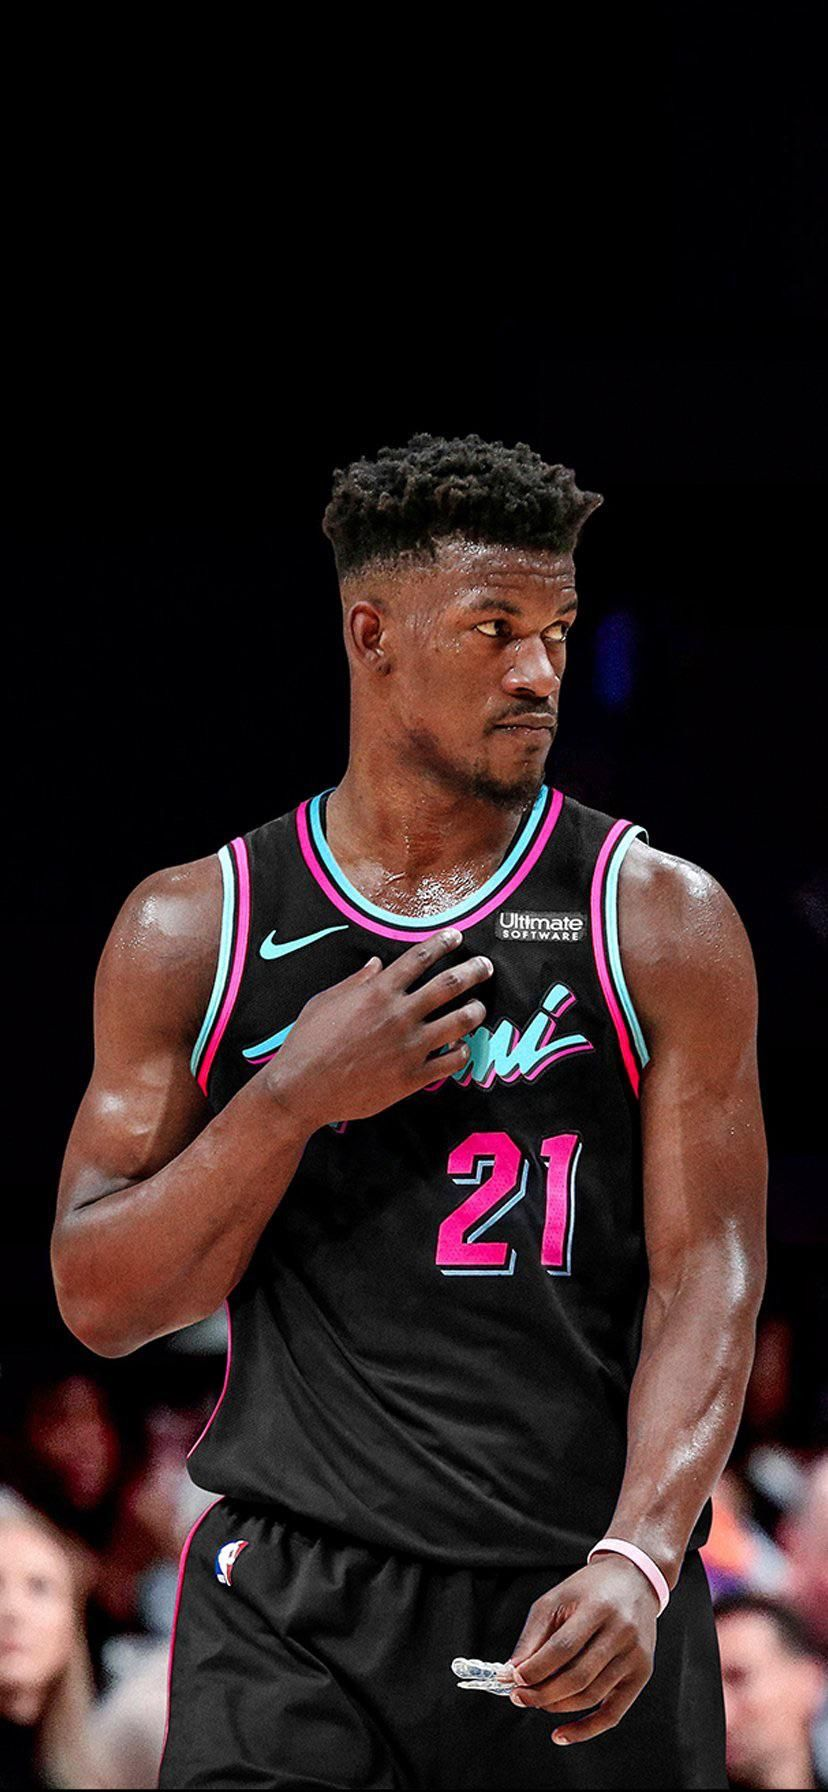 Jimmy Butler Smart Phone Wallpapers 4kphonewallpapersreddit Iphonewallpapersreddit Redditwall Best Nba Players Lebron James Miami Heat Basketball Is Life